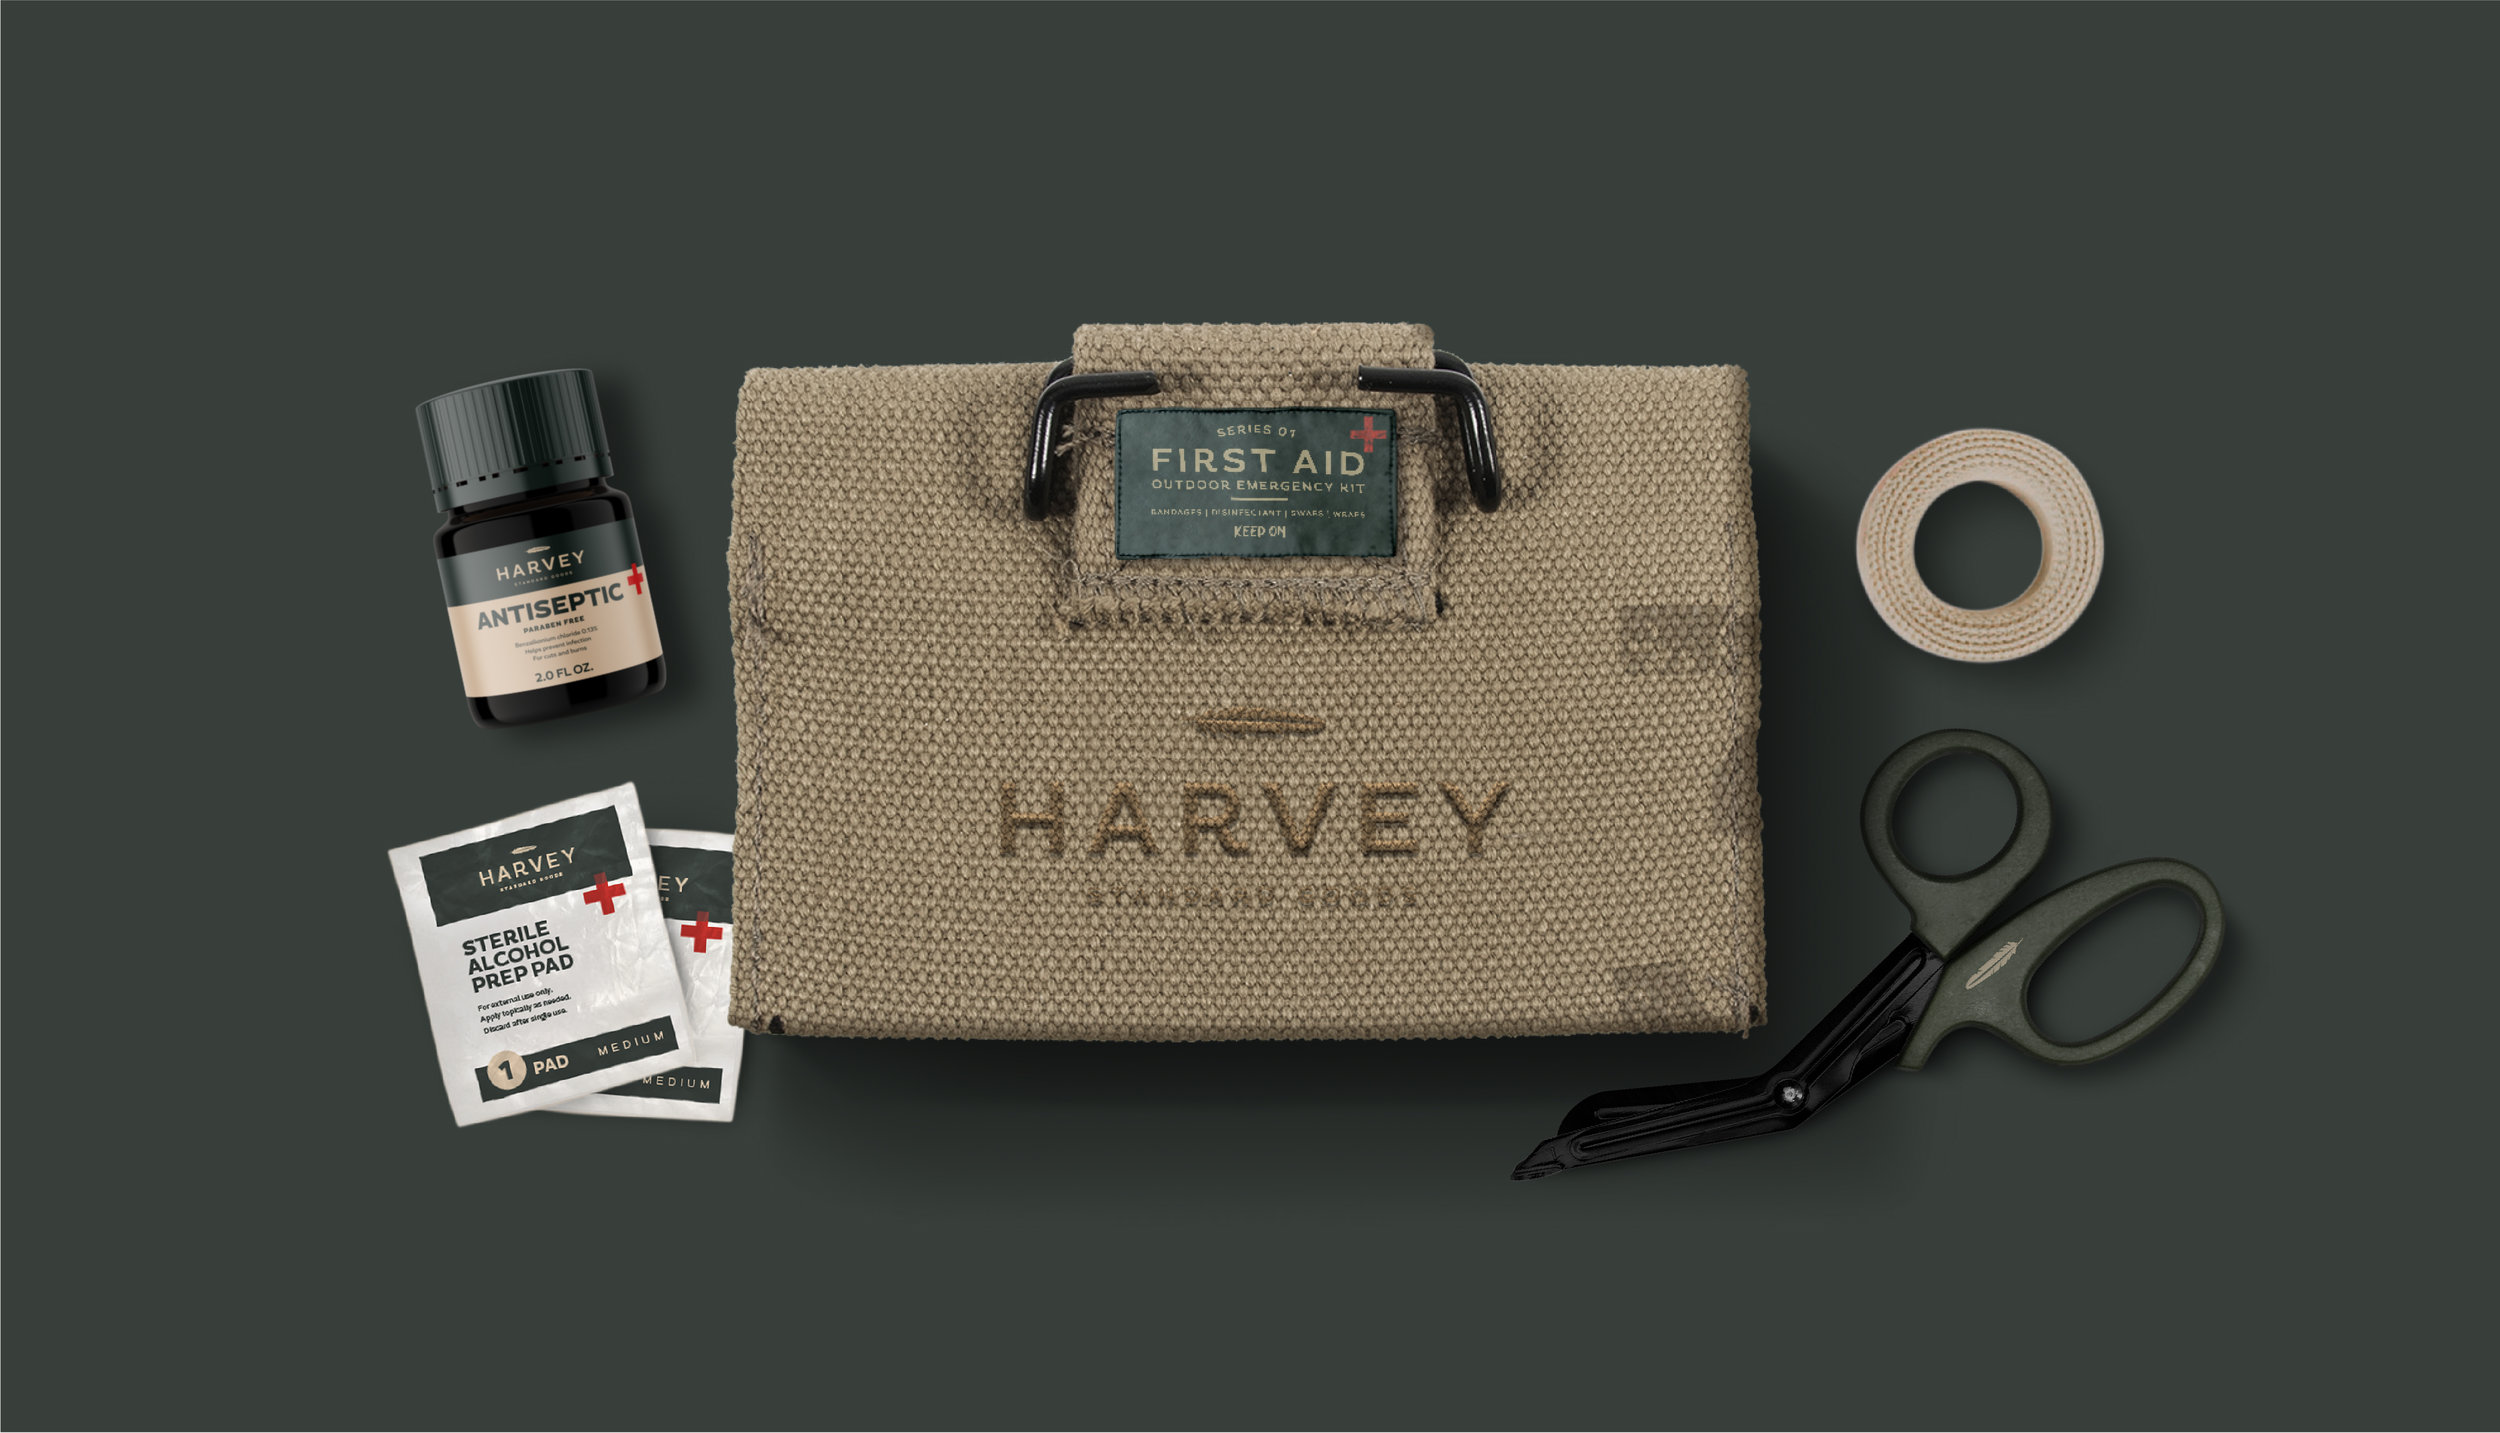 Wakeen-Design-Co-Harvey-Standard-Goods-10.jpg